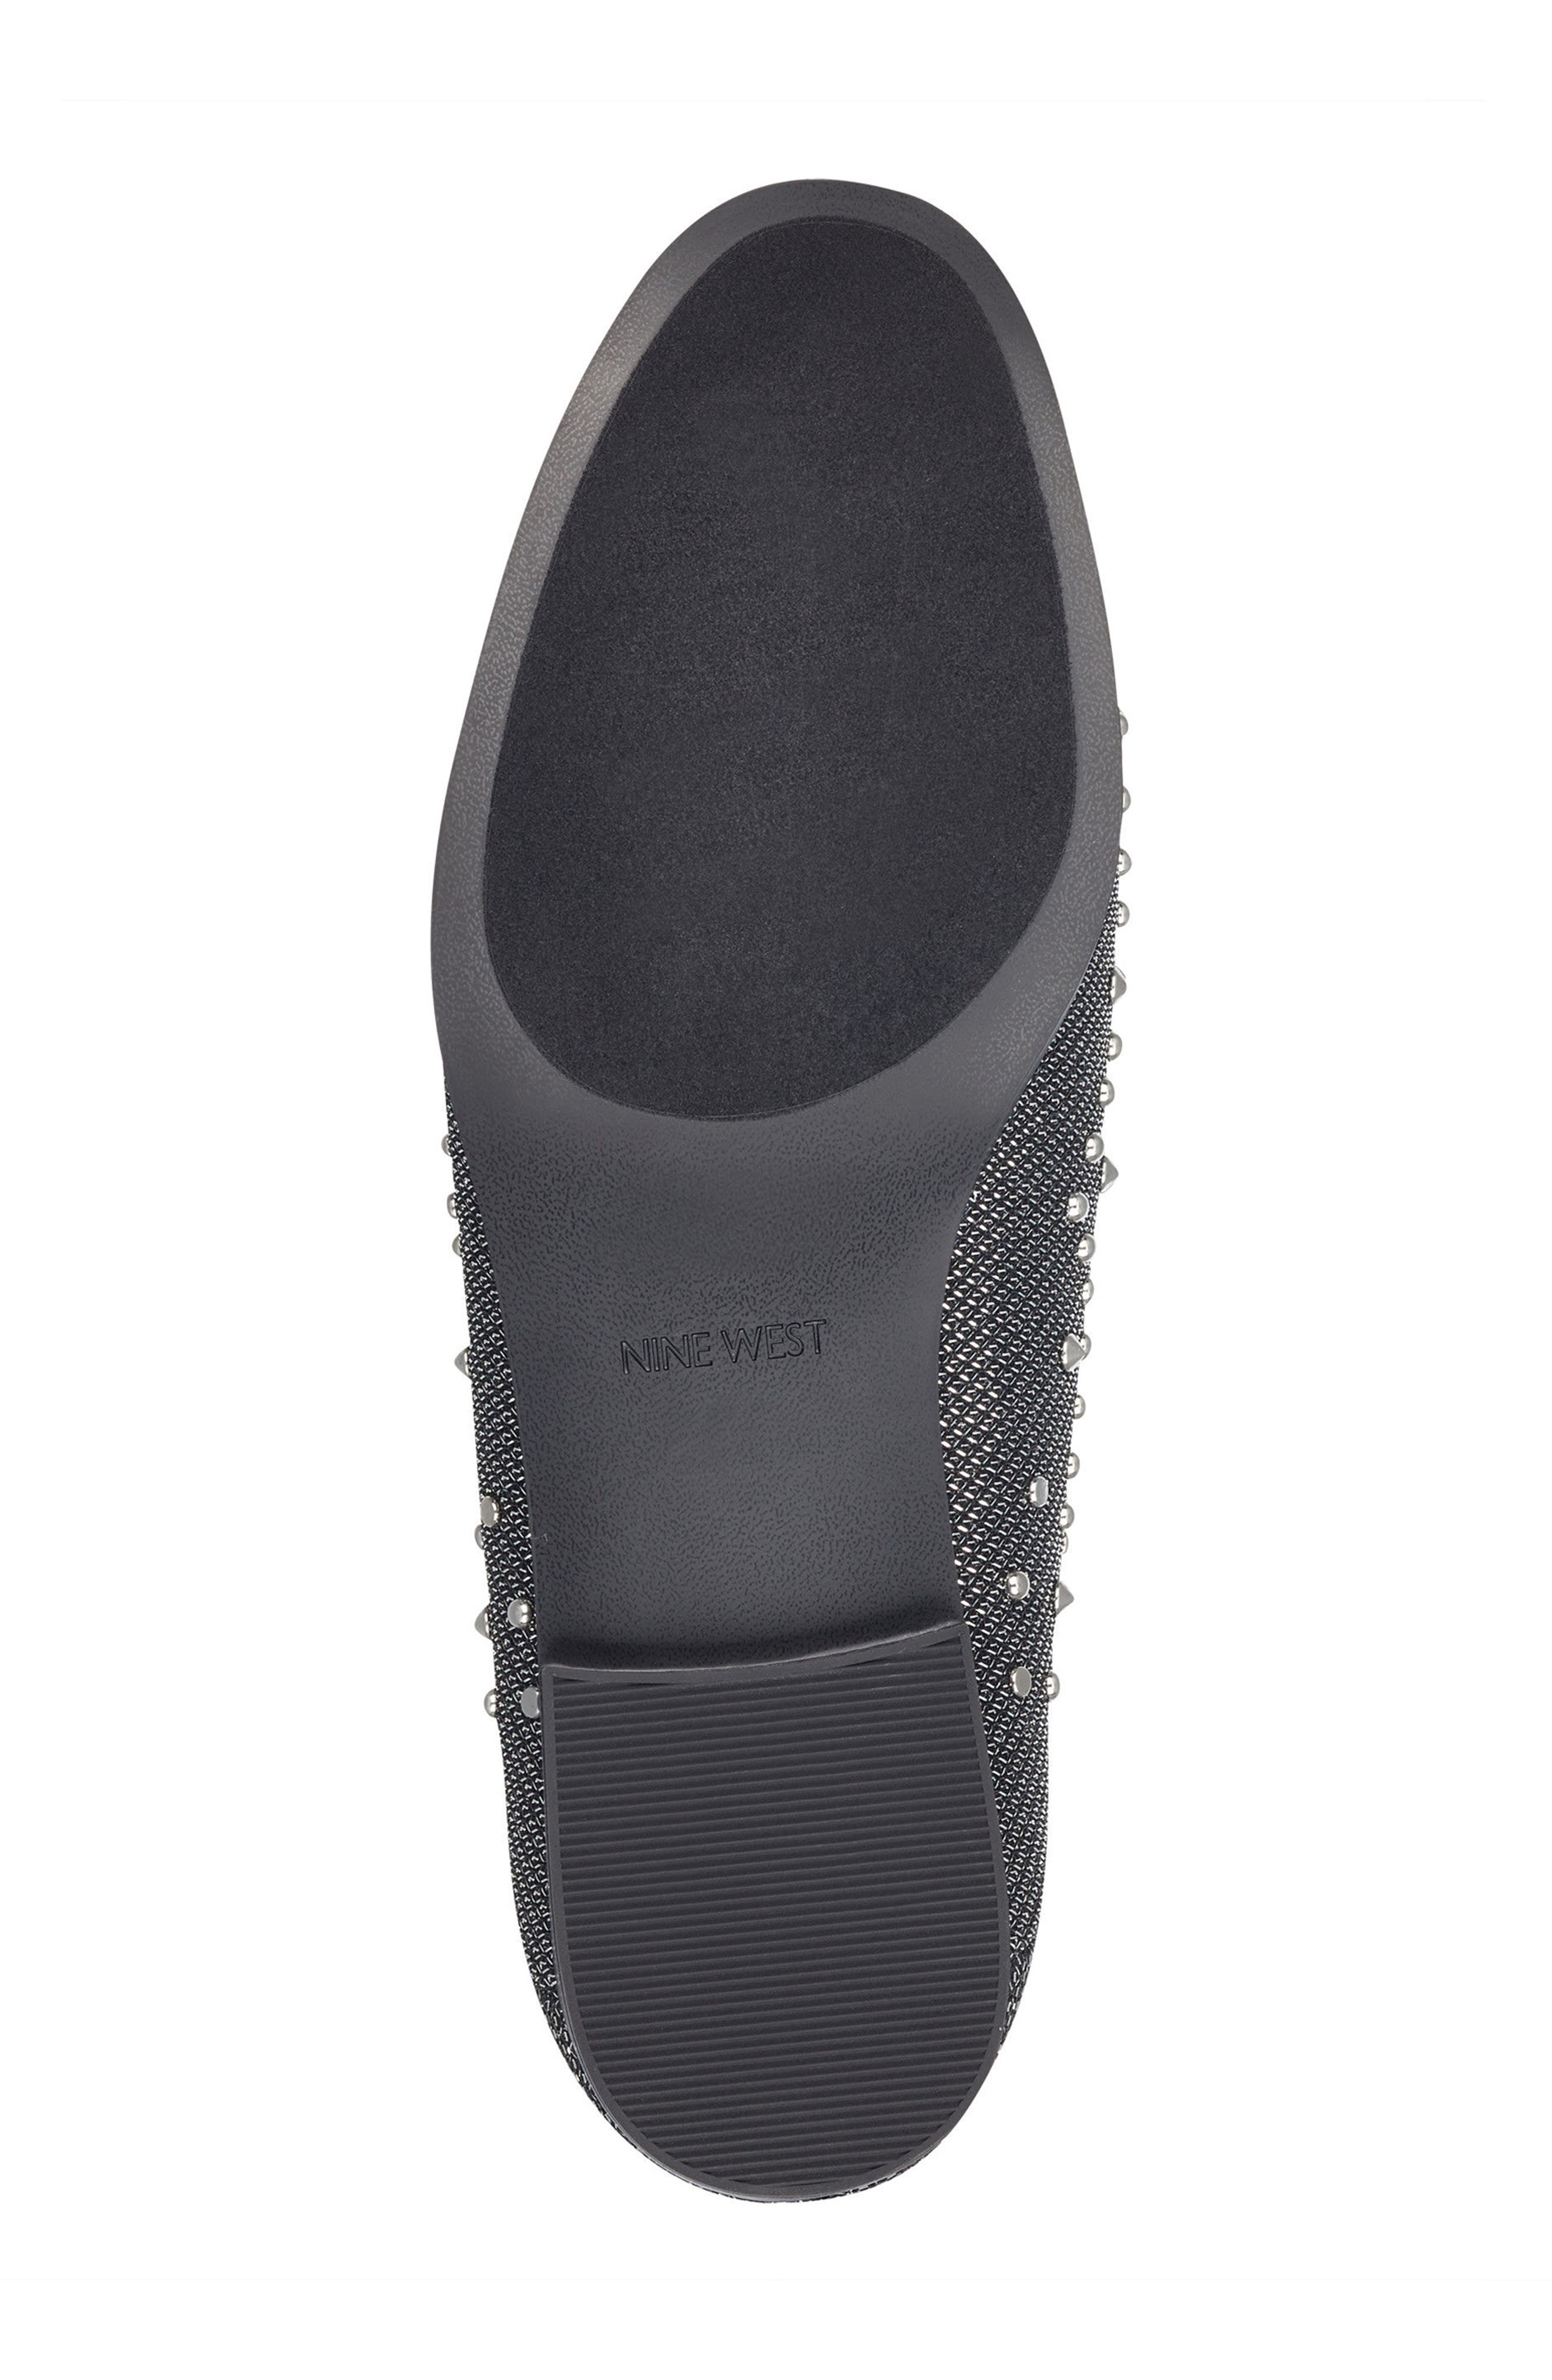 Westoy Studded Loafer,                             Alternate thumbnail 6, color,                             001